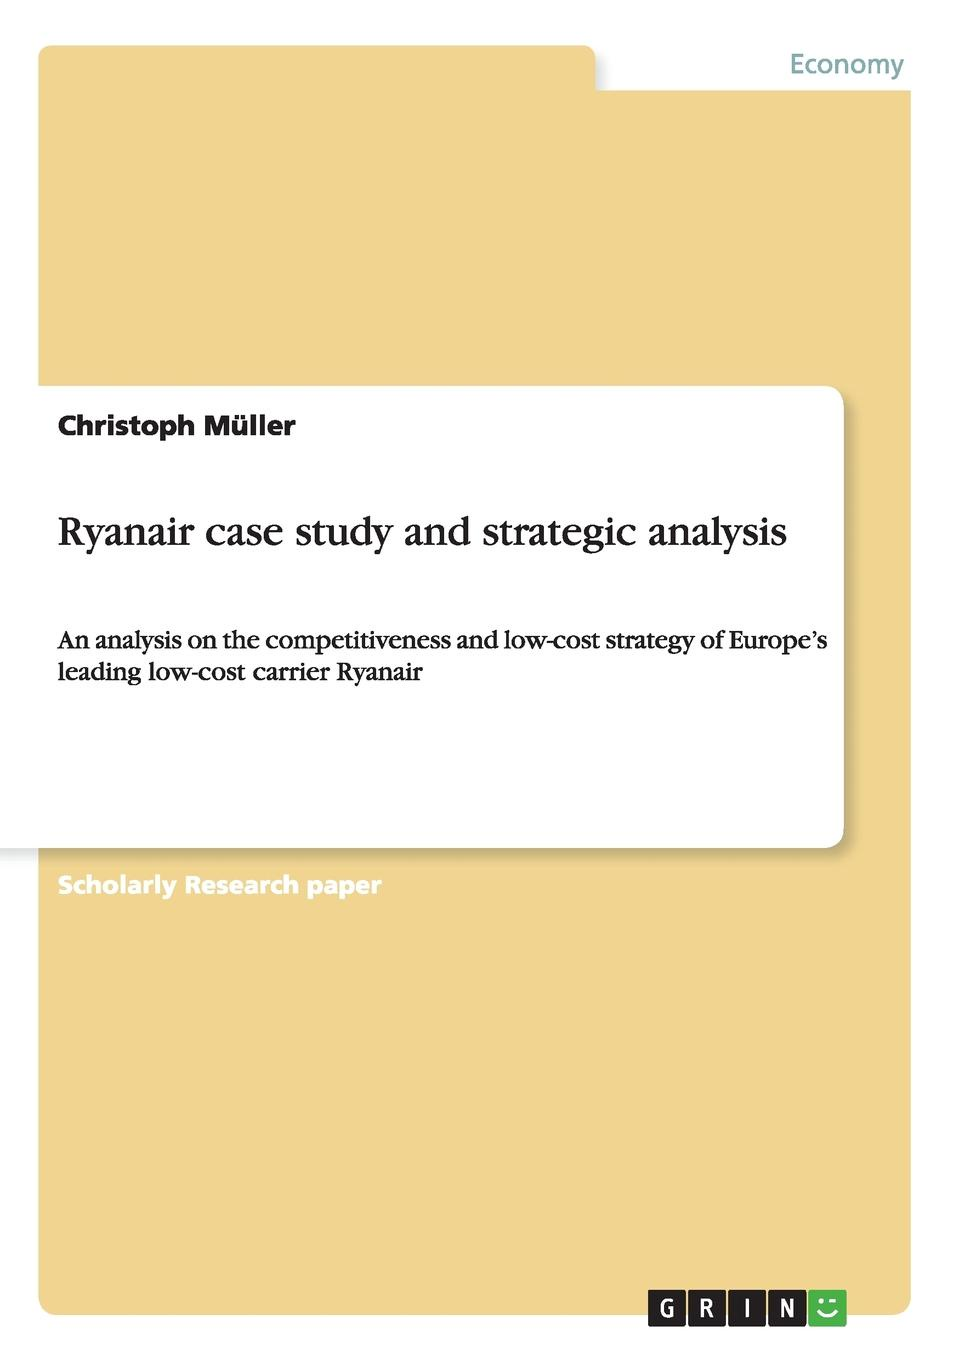 Ryanair case study and strategic analysis Research Paper (undergraduate) from the year 2011 in the subject...